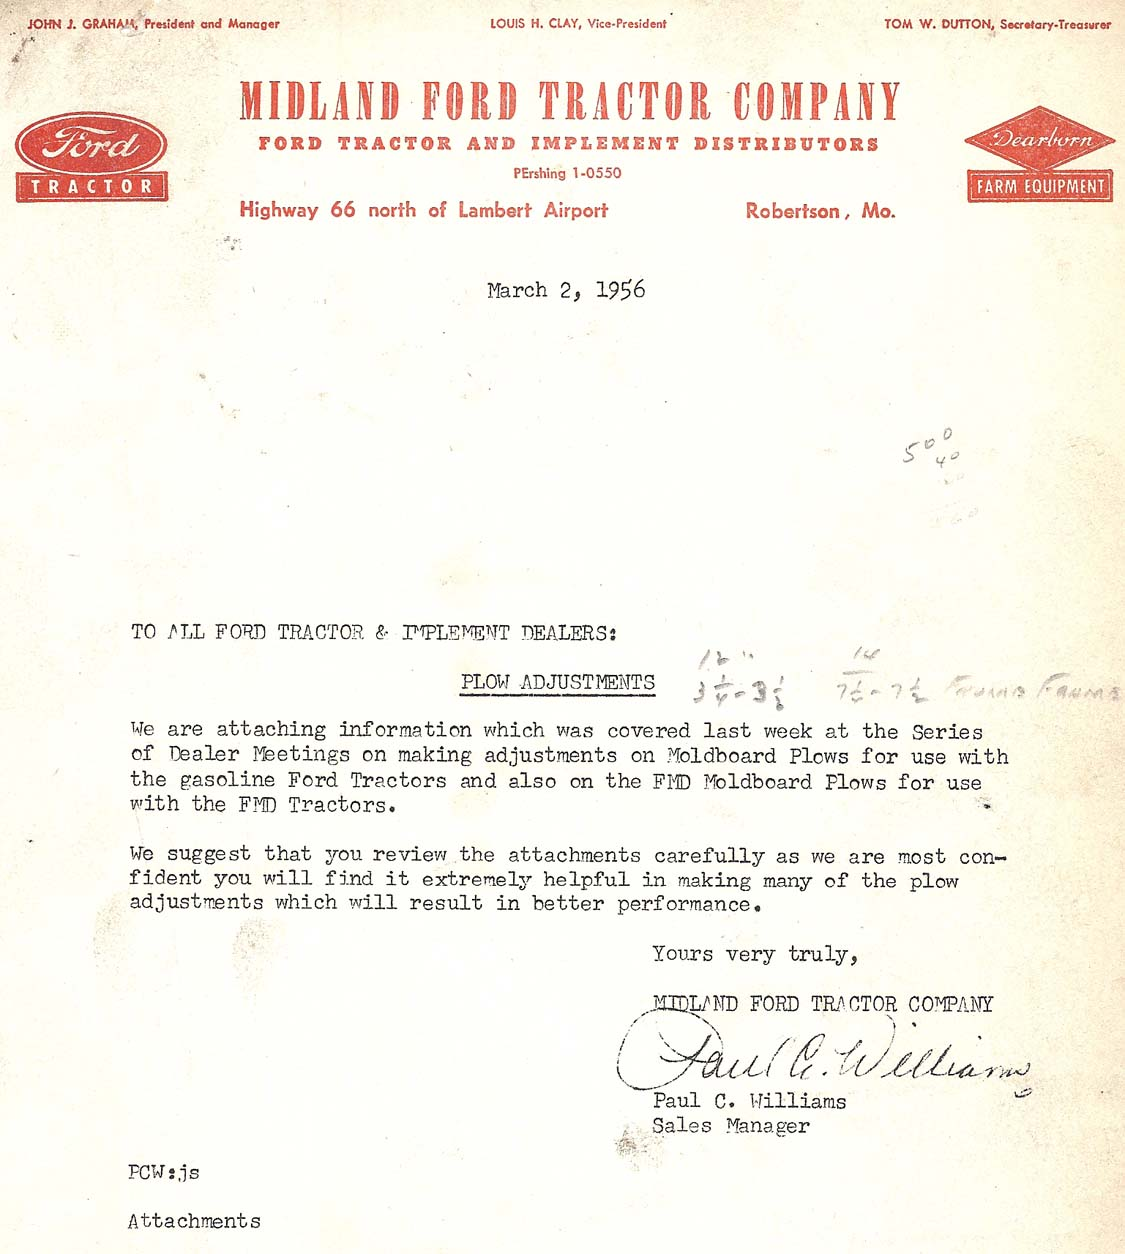 1956 Tsb On Recommended Adjustments For Moldboard Plows